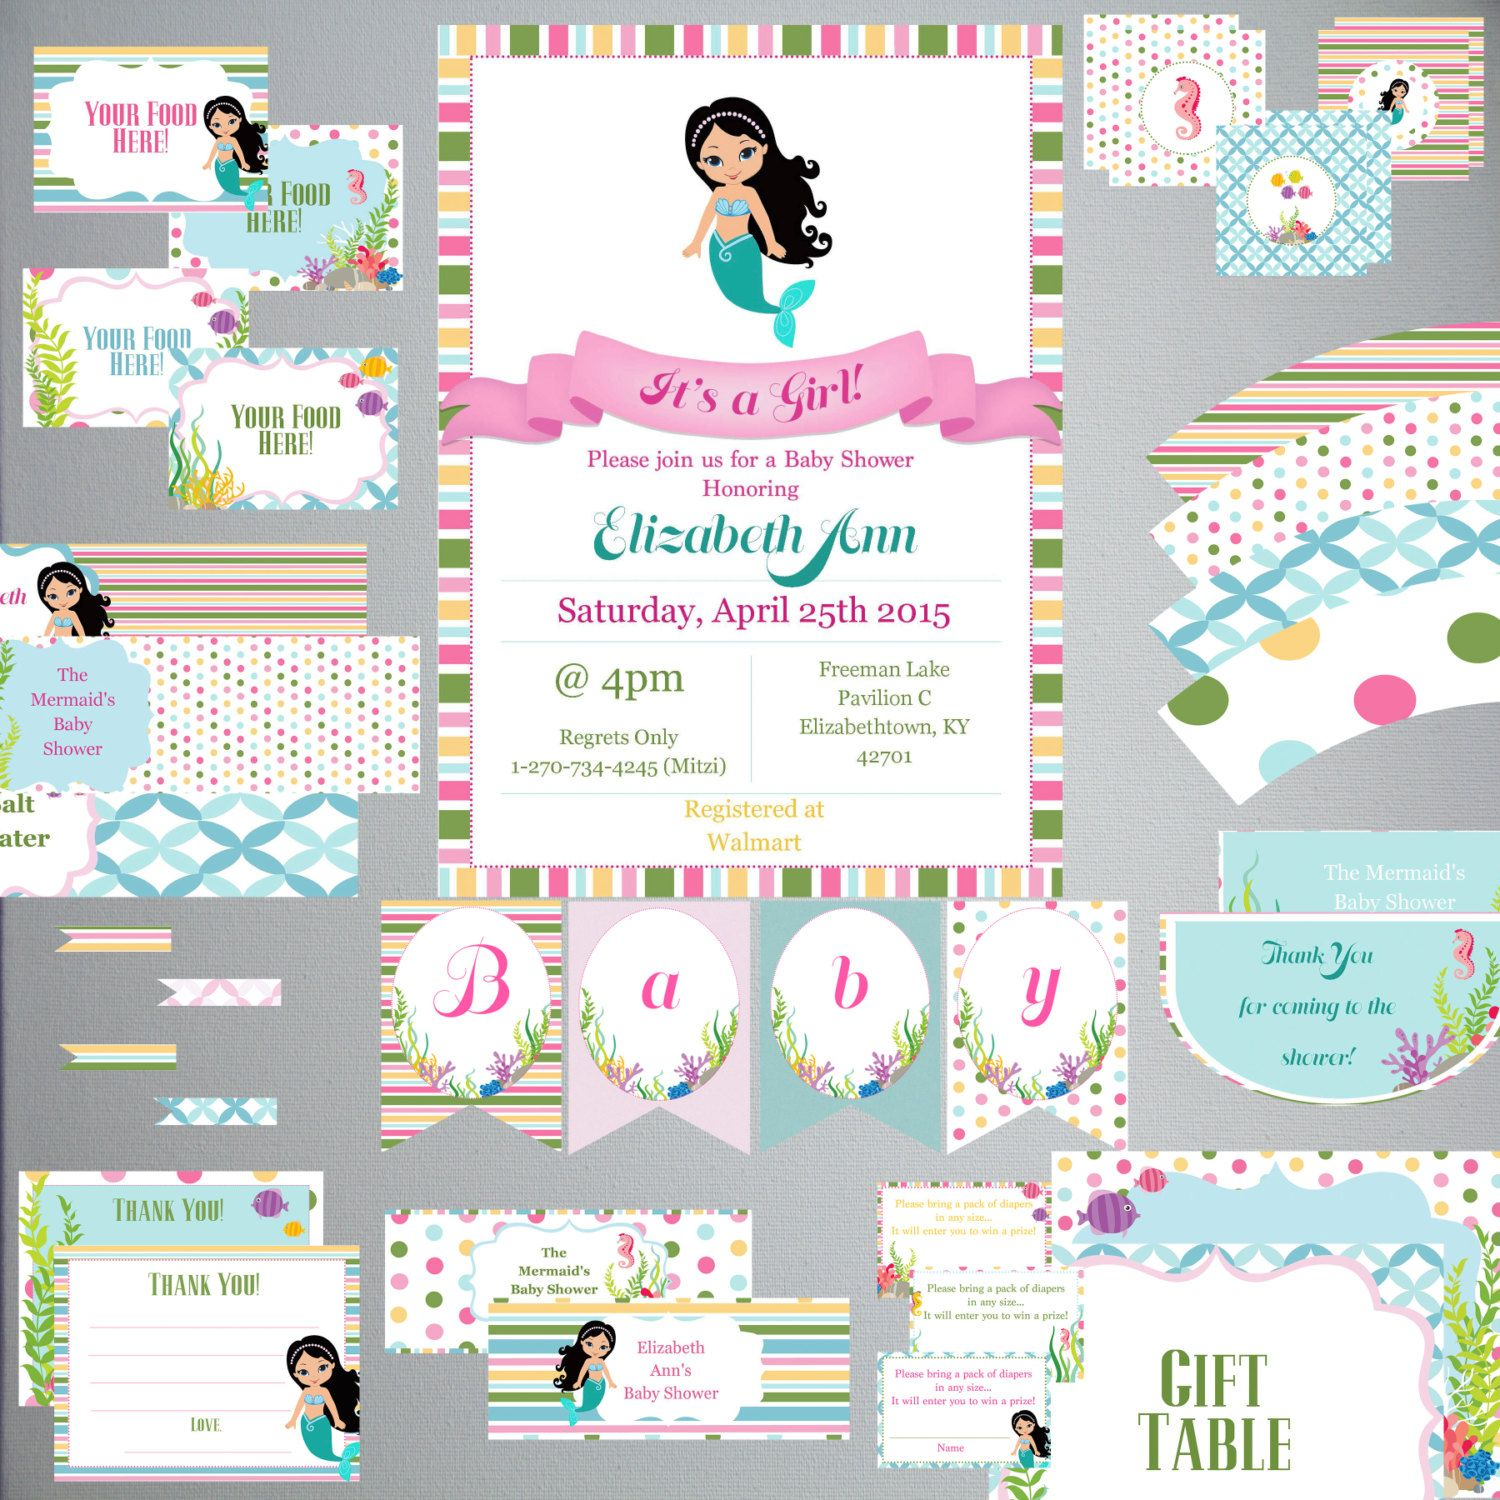 Mermaid BABY Shower Set-DIY Printable-Instant Download-Editable-Print At Home-Party Supplies by PaperWillowDesigns on Etsy